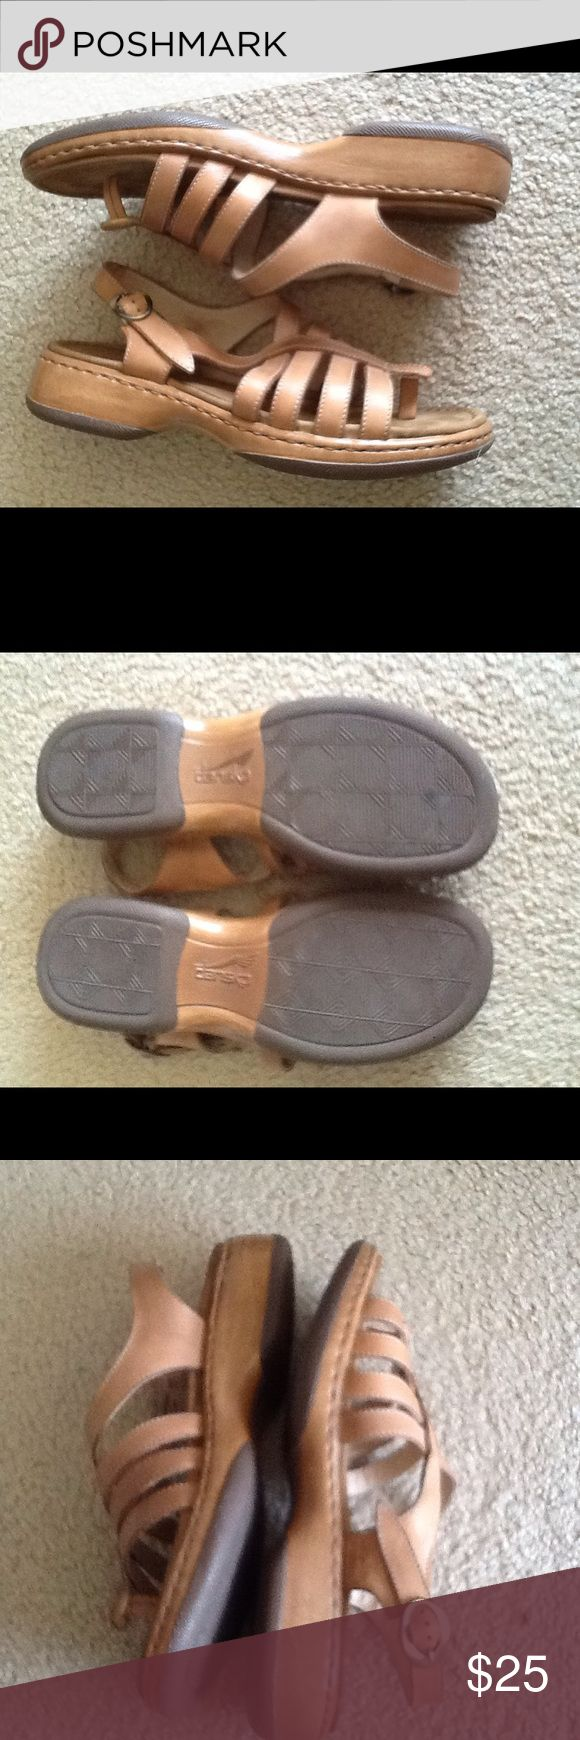 FLASH SALE SUPER CONFY DANSKO SANDALS LIKE NEW Great for traveling and lots of walking, this beautiful leather sandals are amazingly comfortable great for spring and summer. Dansko Shoes Sandals